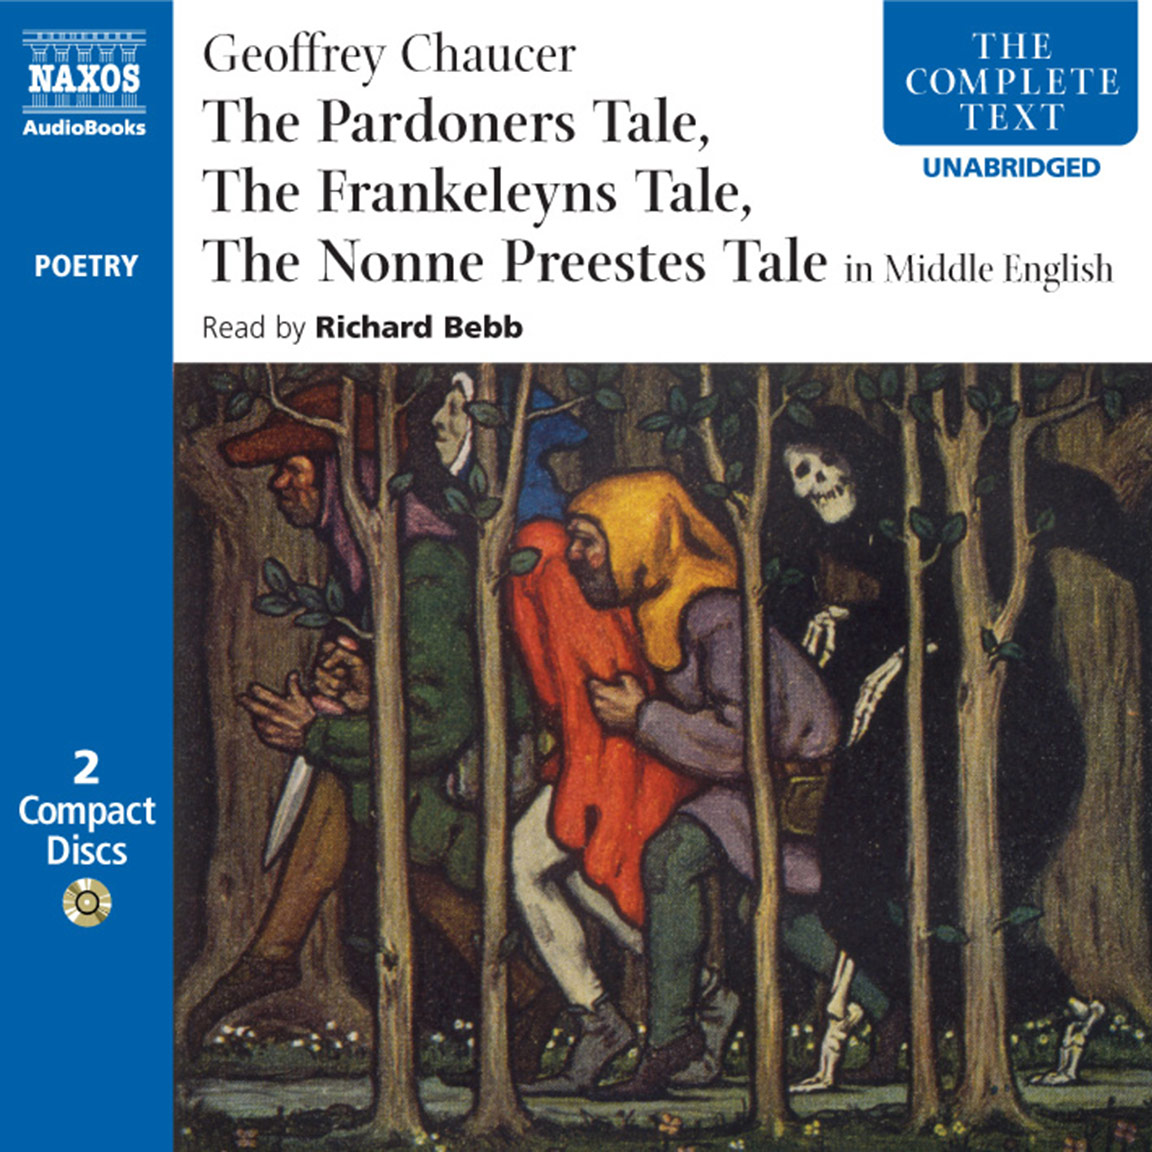 the negative attribute of greed in the pardoners tale a book by geoffrey chaucer Geoffrey chaucer this book was created and published on storyjumper™  the pardoner's tale  lenativus public book 854 previews 35 likes tis the story from the pardoner (23 pages) create your book for free enjoy these books.